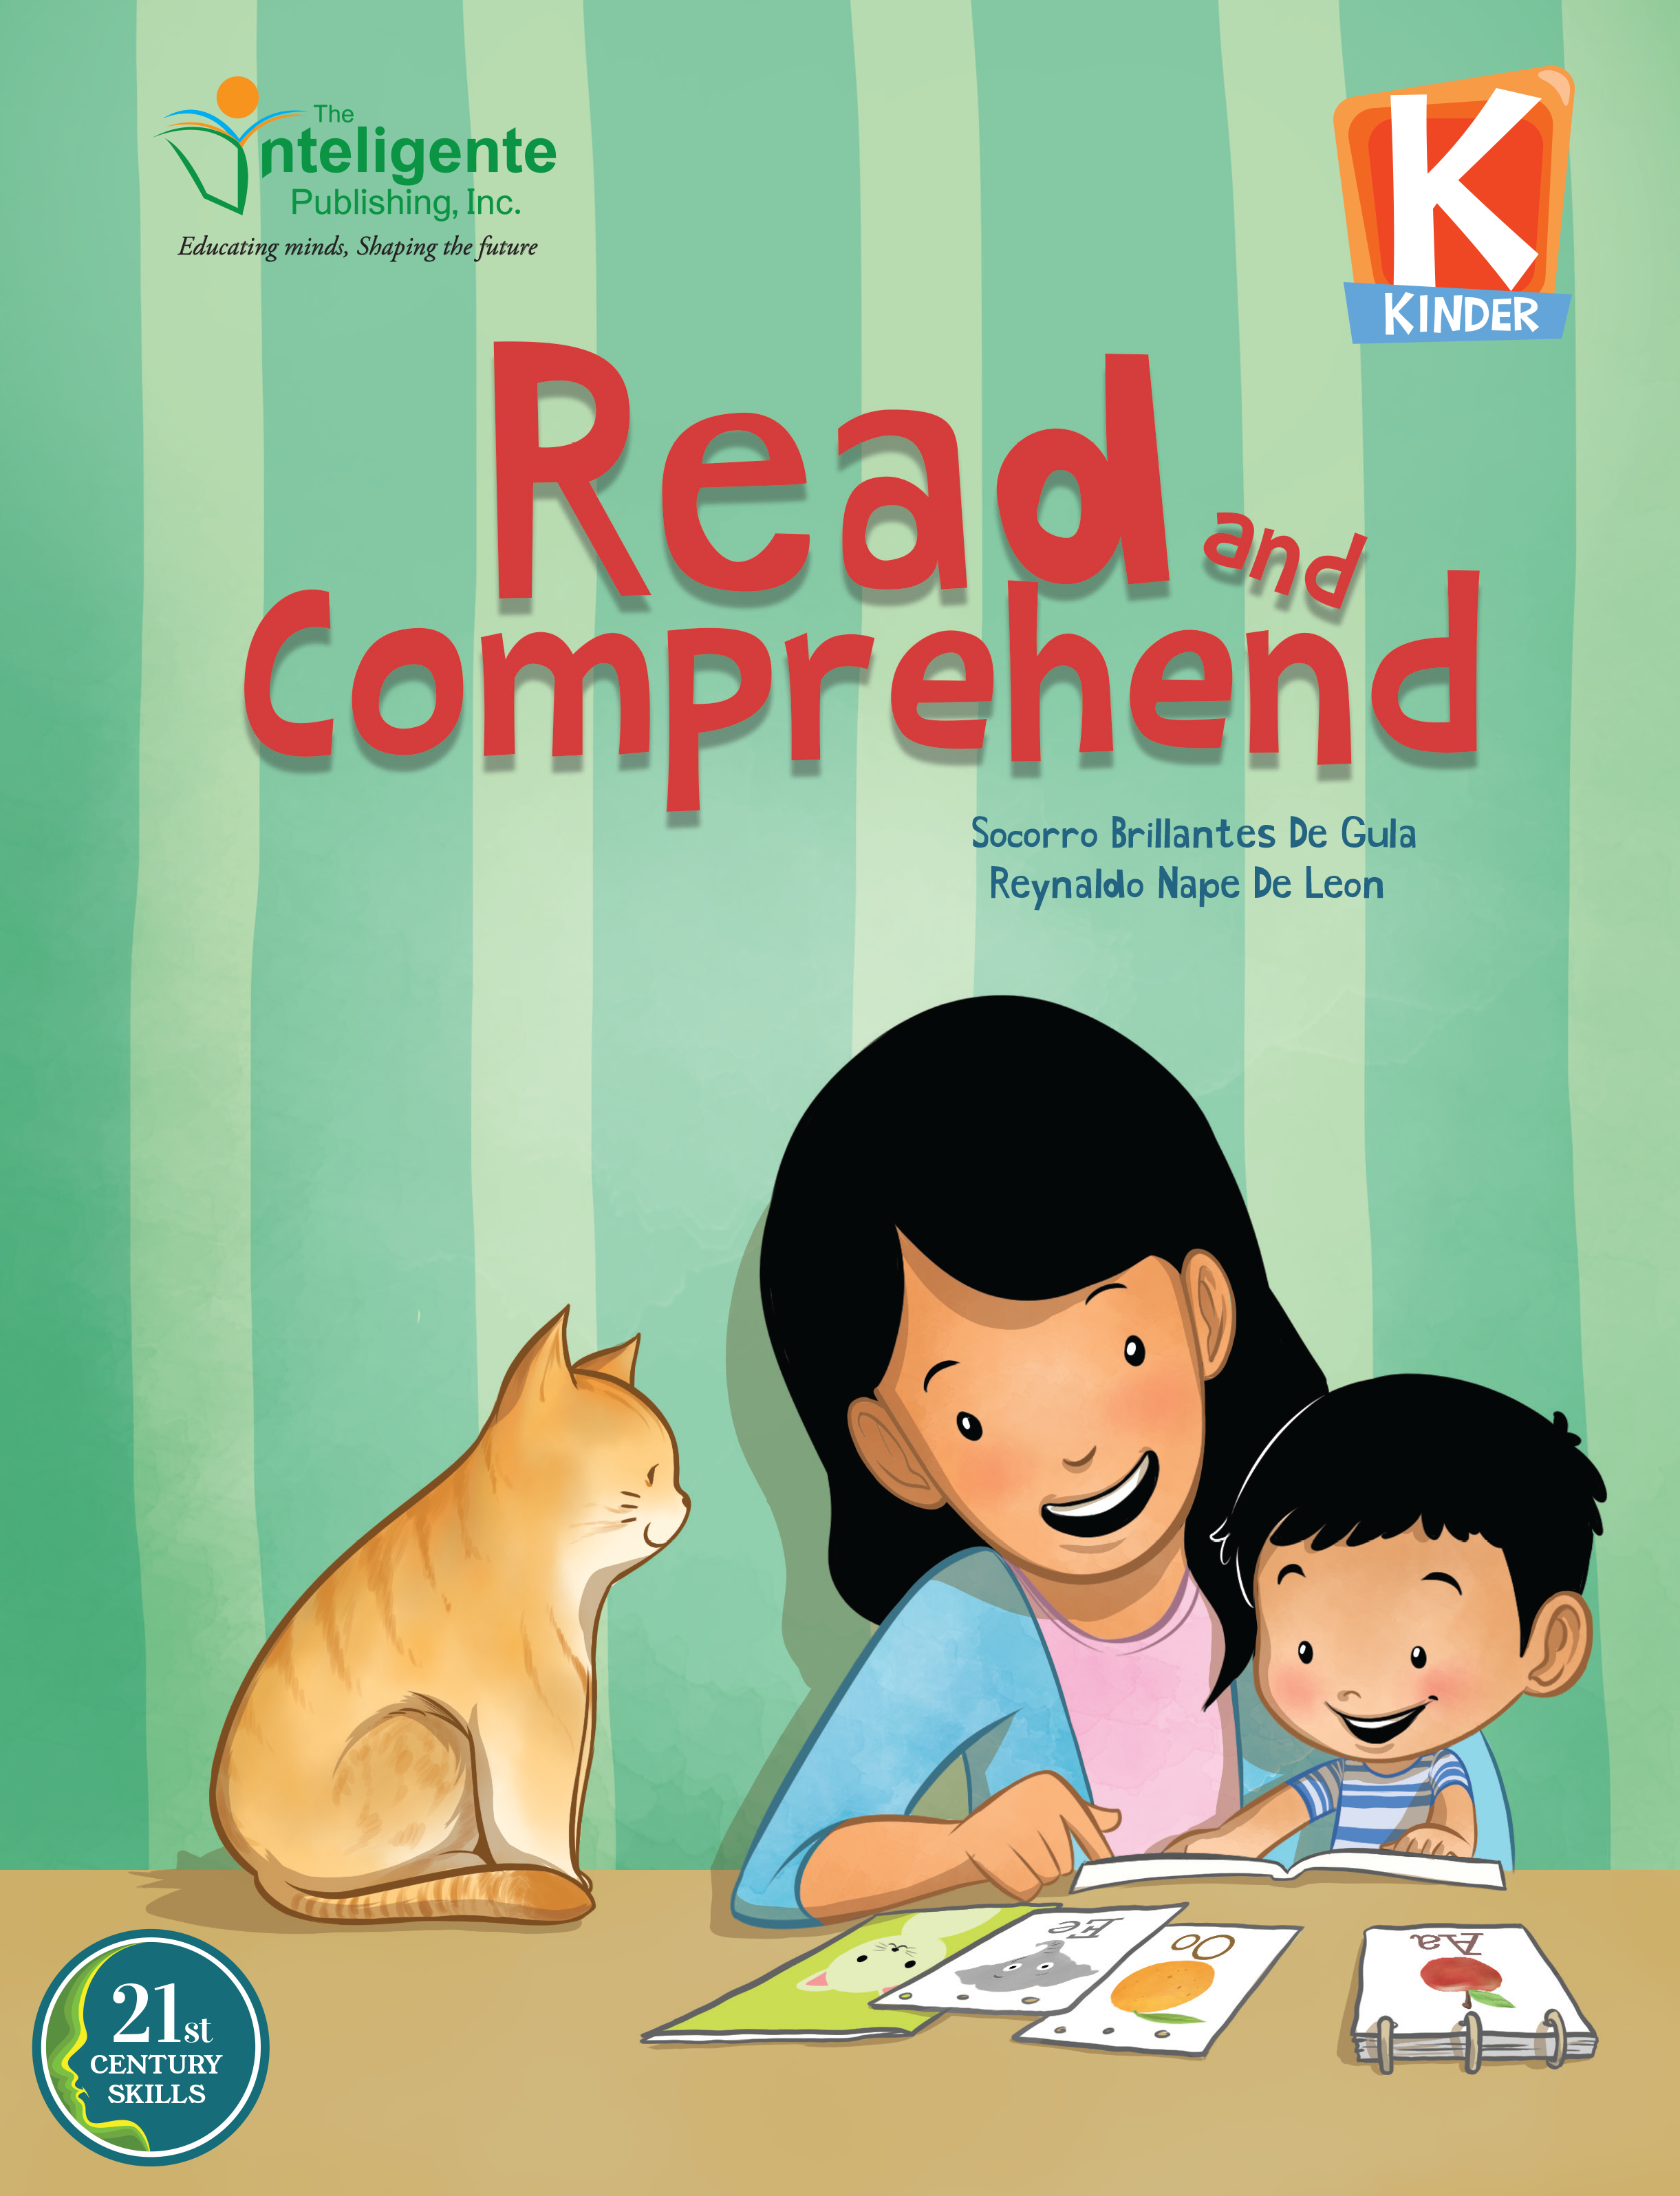 Read and Comprehend (Cover)